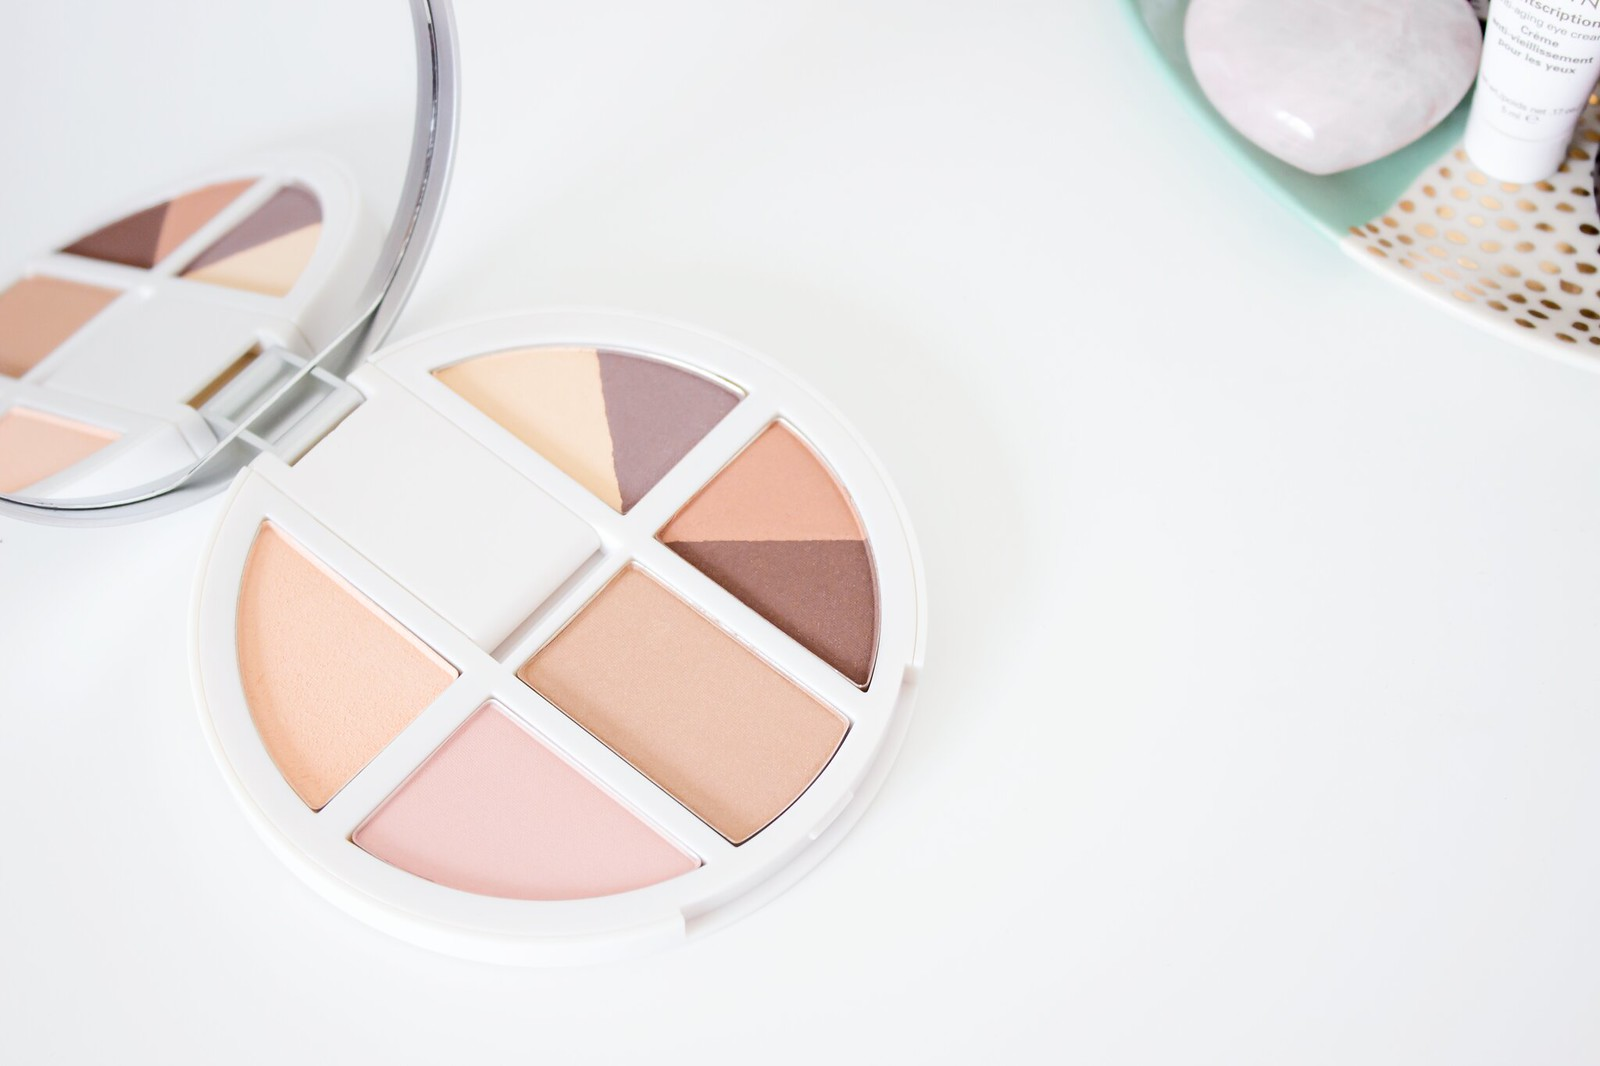 PÜR Vanity Palette Eyes and Cheek Palette